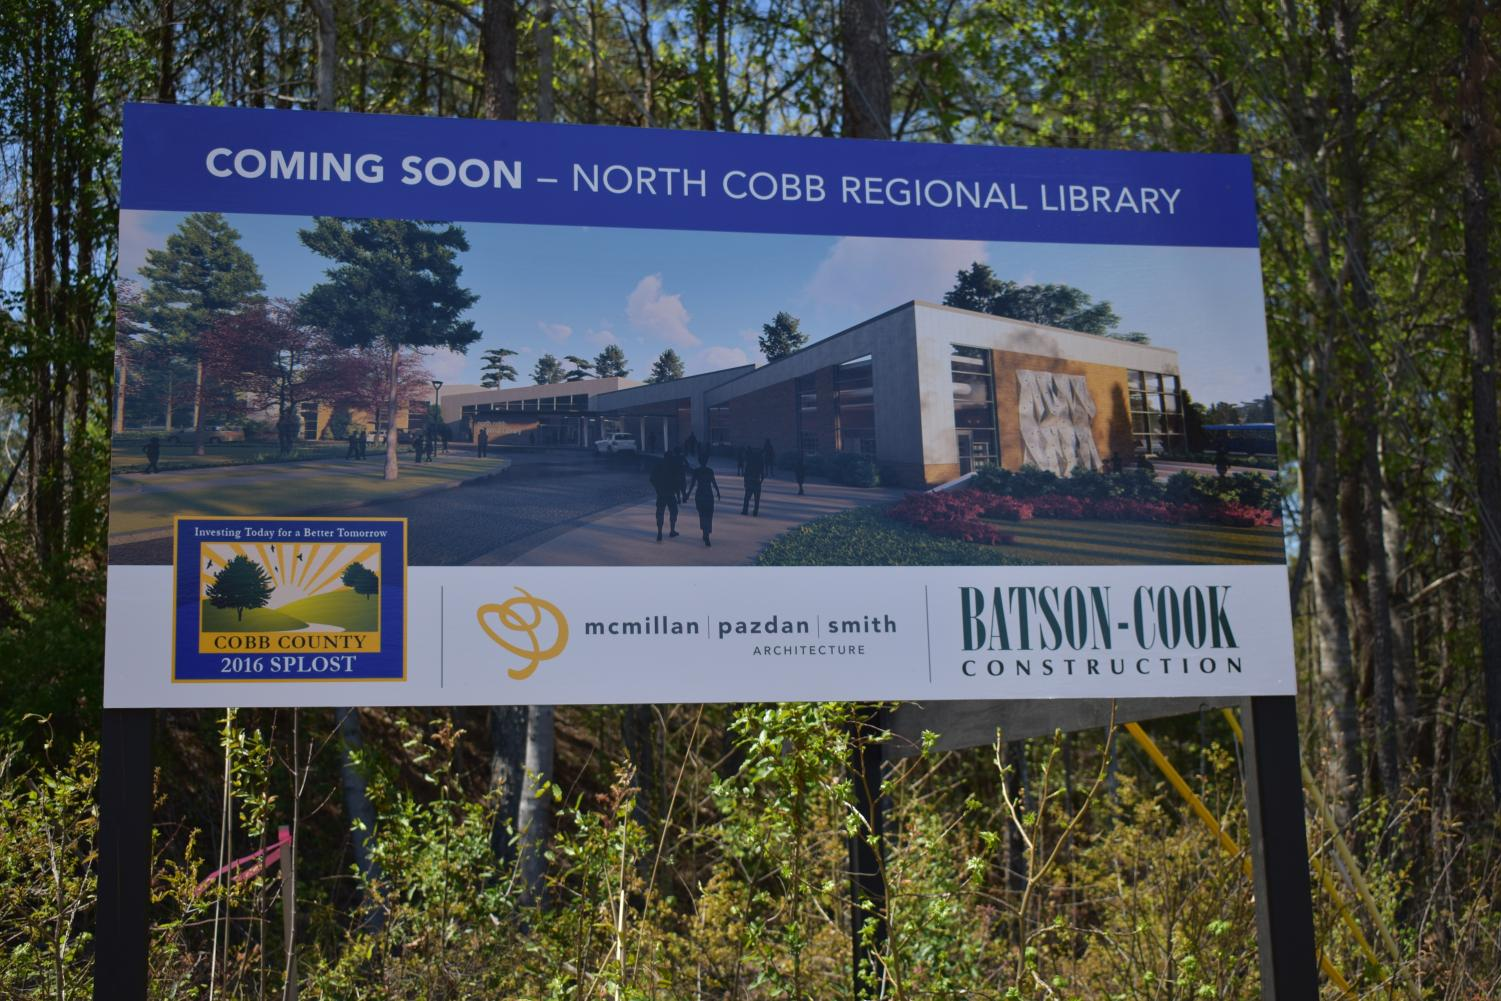 Cobb County's plan to bring together Acworth and Kennesaw libraries progresses into a physical plan for the consolidated library.